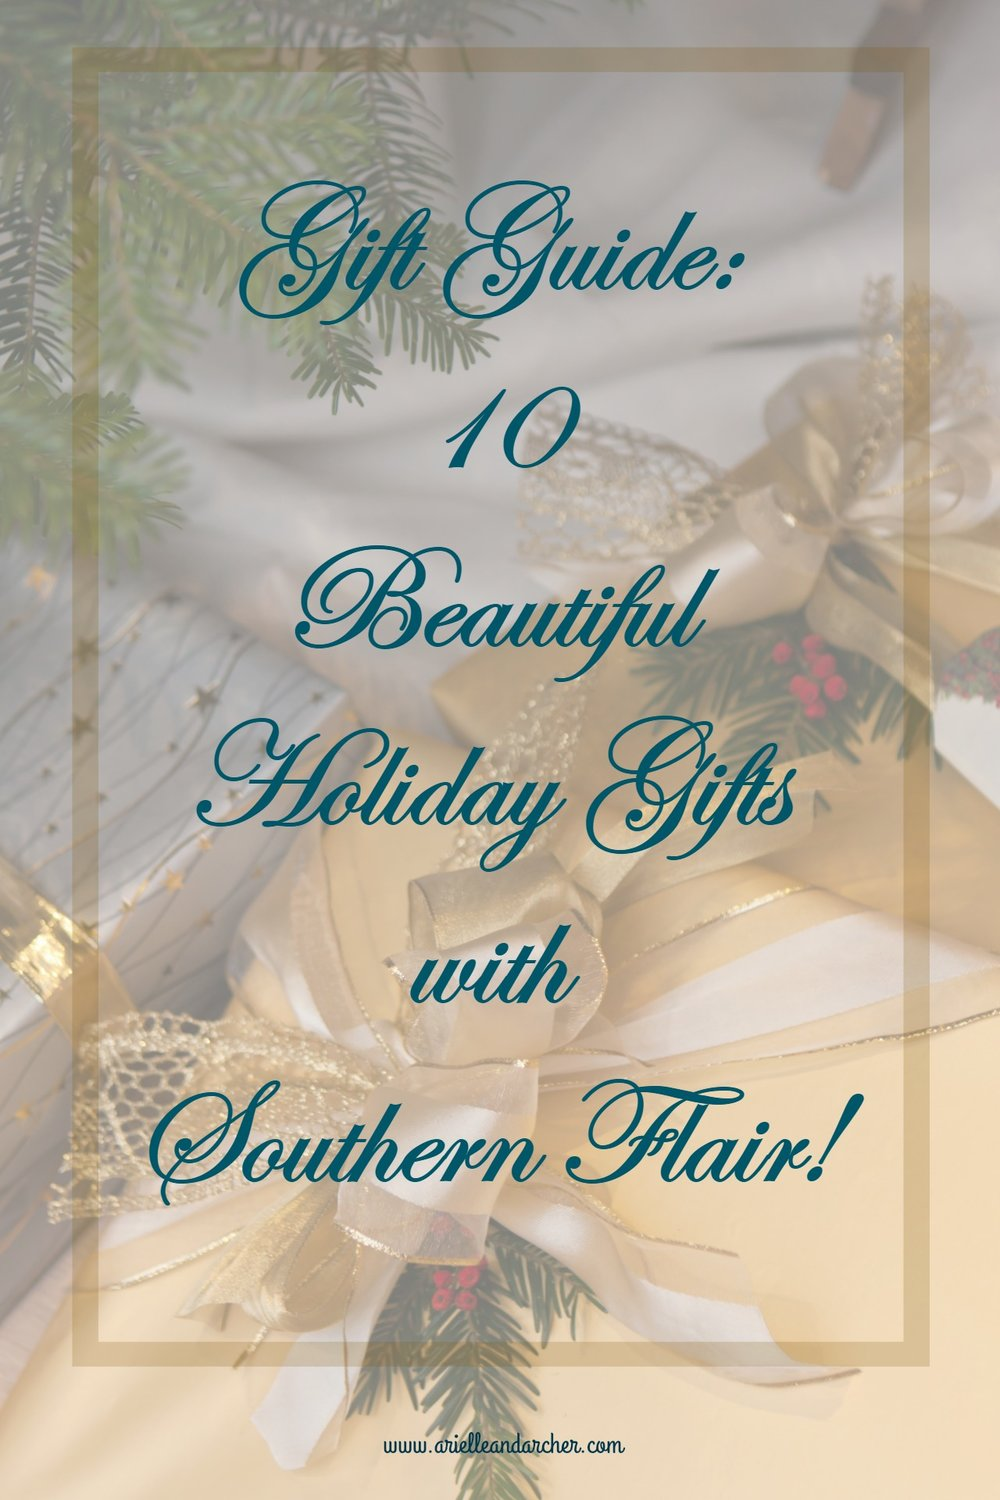 Gift Guide 10 Beautiful Holiday Gifts with Southern Flair!